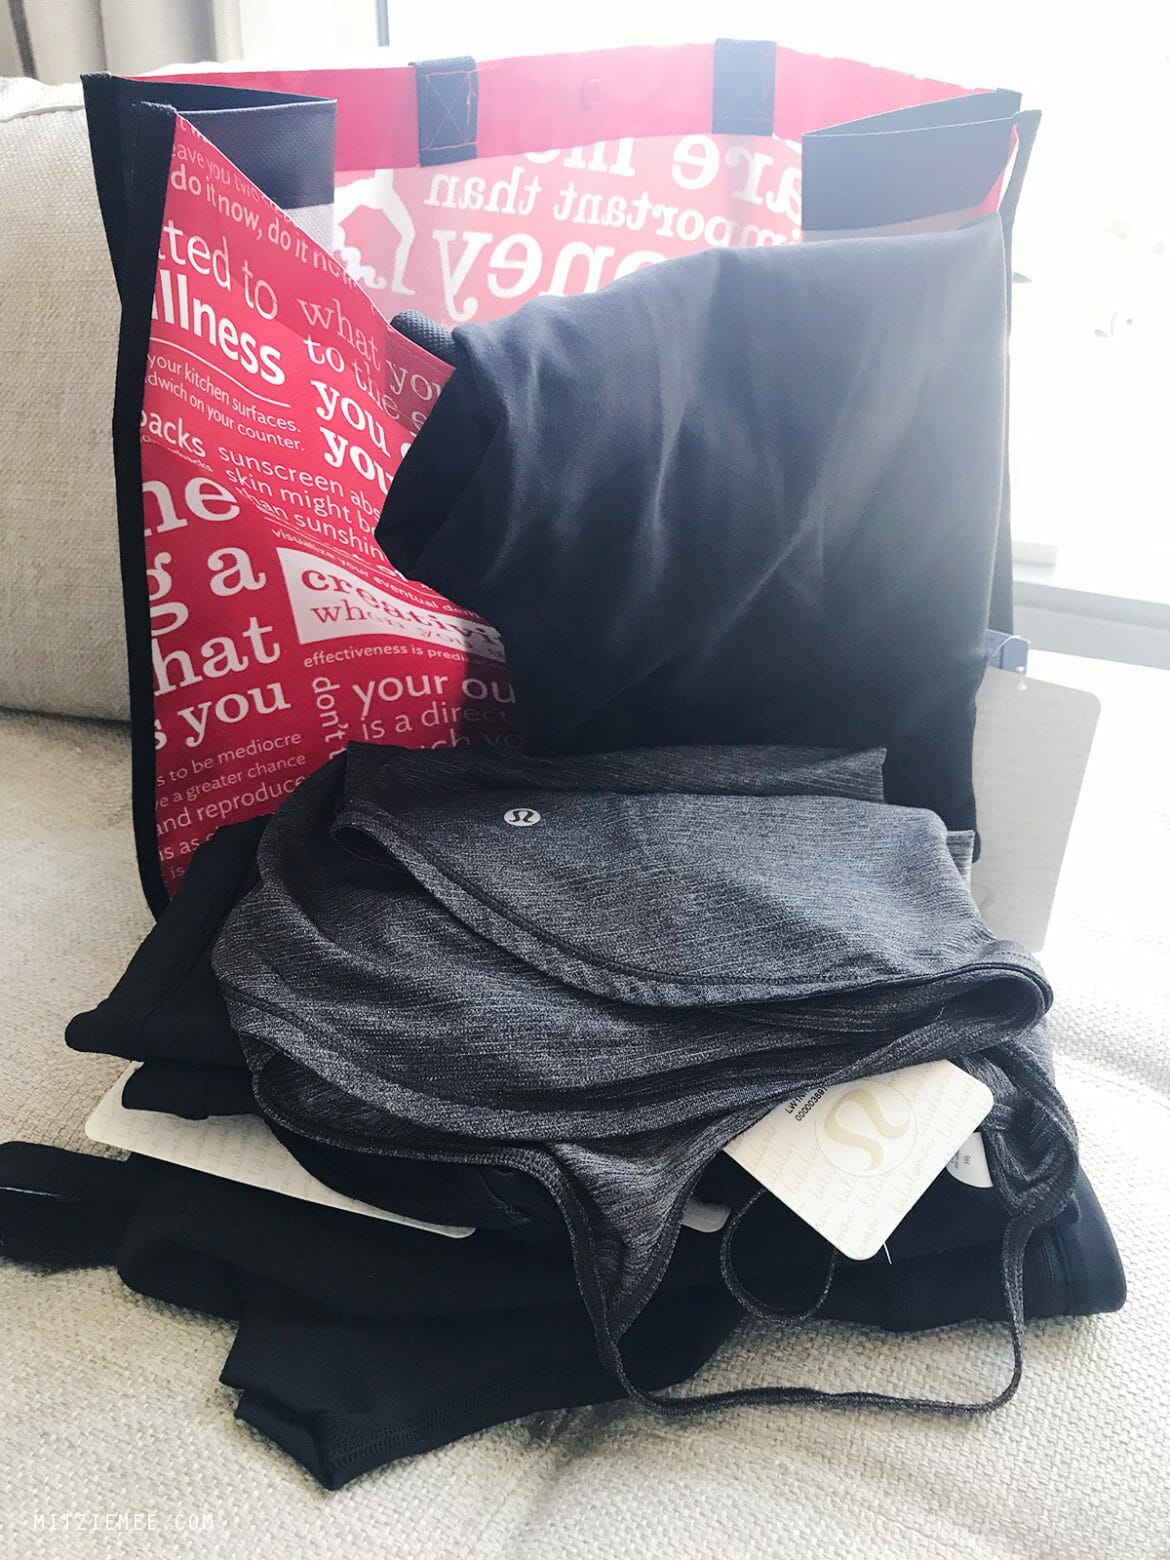 Lululemon yoga clothes